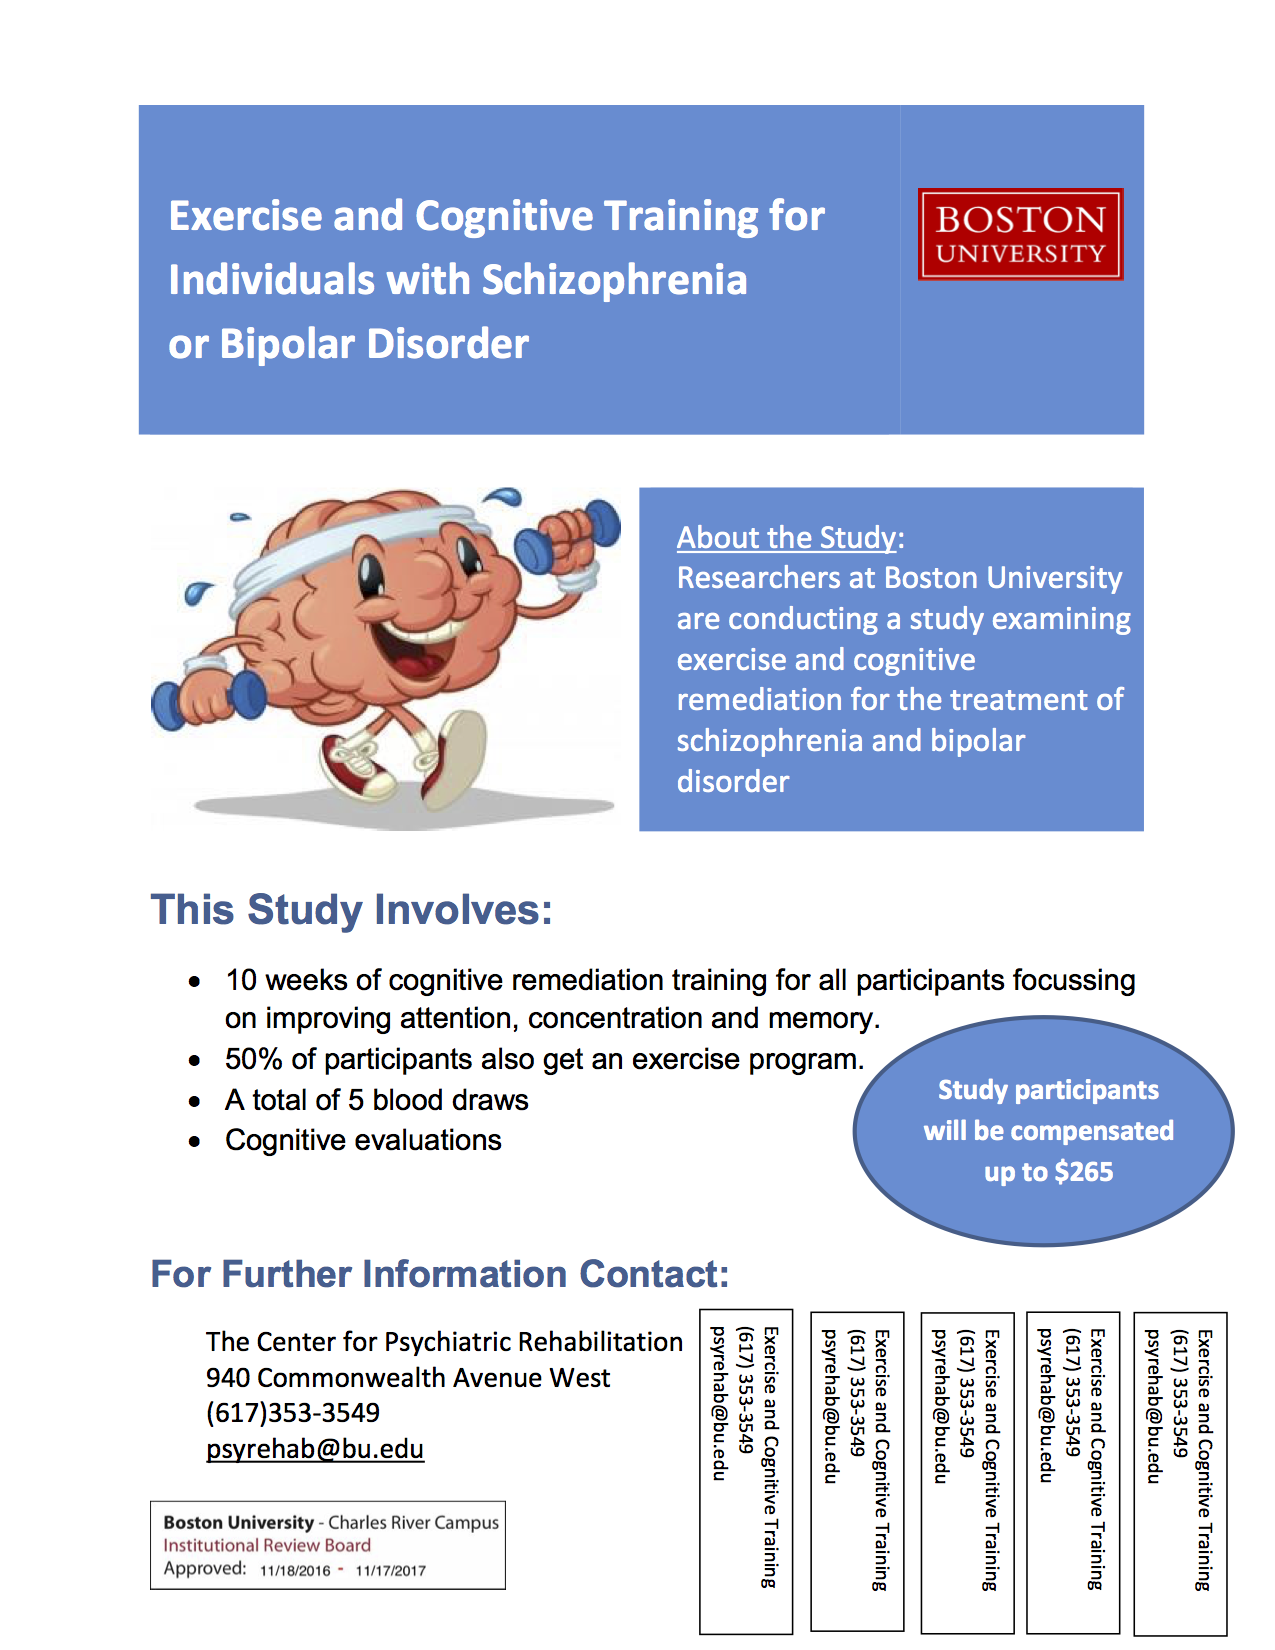 Exercise and Cognitive Training for Individuals with Schizophrenia. About the Study: Researchers at Boston University are conducting a study examining exercise and cognitive remediation for the treatment of schizophrenia and bipolar disorder. This Study Involves: - 10 weeks of cognitive remediation training - randomization to an exercise program or non-exercise control condition - a total of 5 blood draws - cognitive assessment. For Further Information Contact: The Center for Psychiatric Rehabilitation 940 Commonwealth Avenue West (617) 353-3549 psyrehab@bu.edu